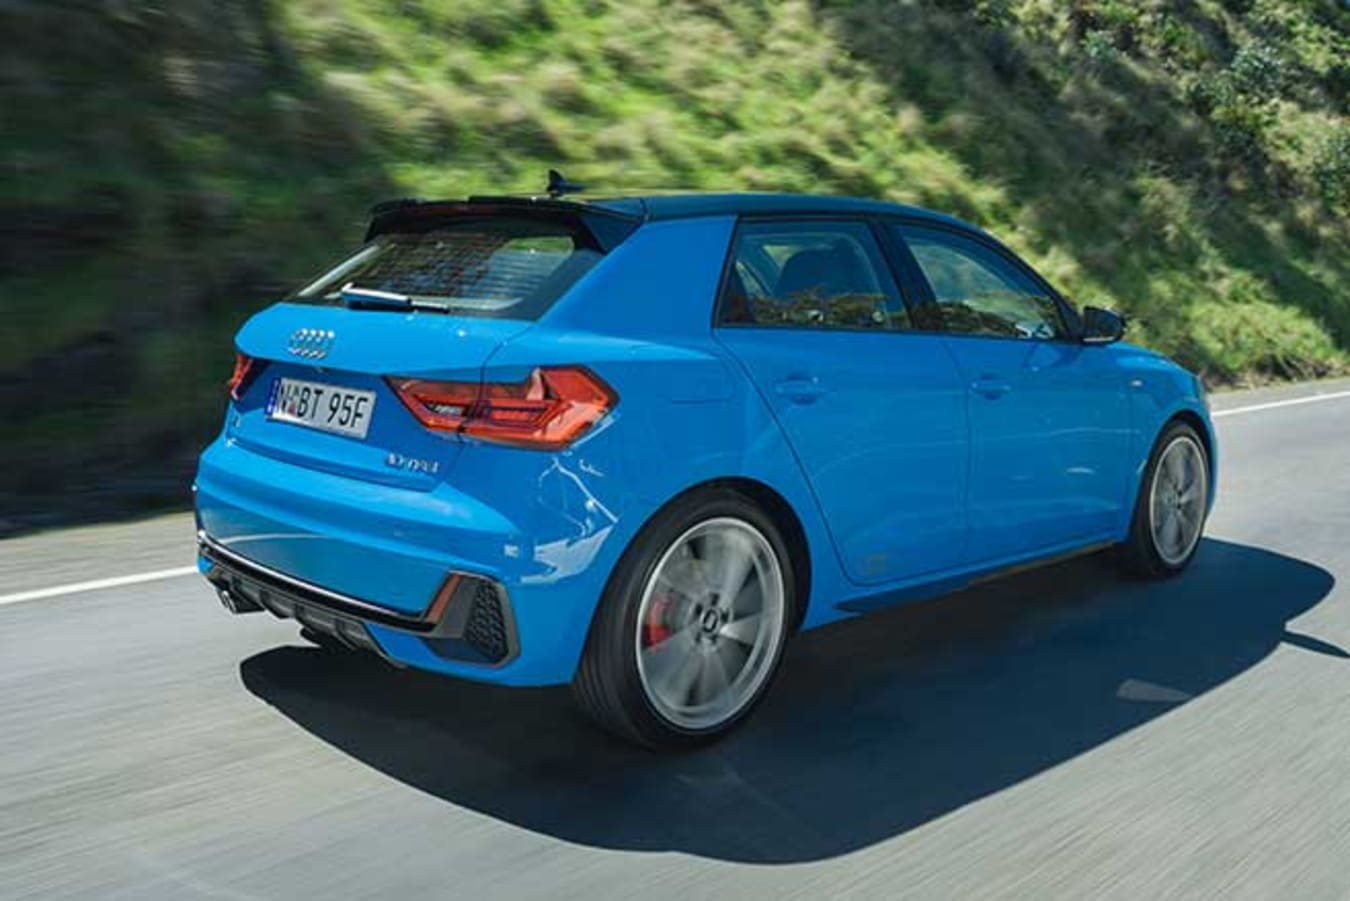 Audi A1 with S-line bodykit and 18-inch wheels.